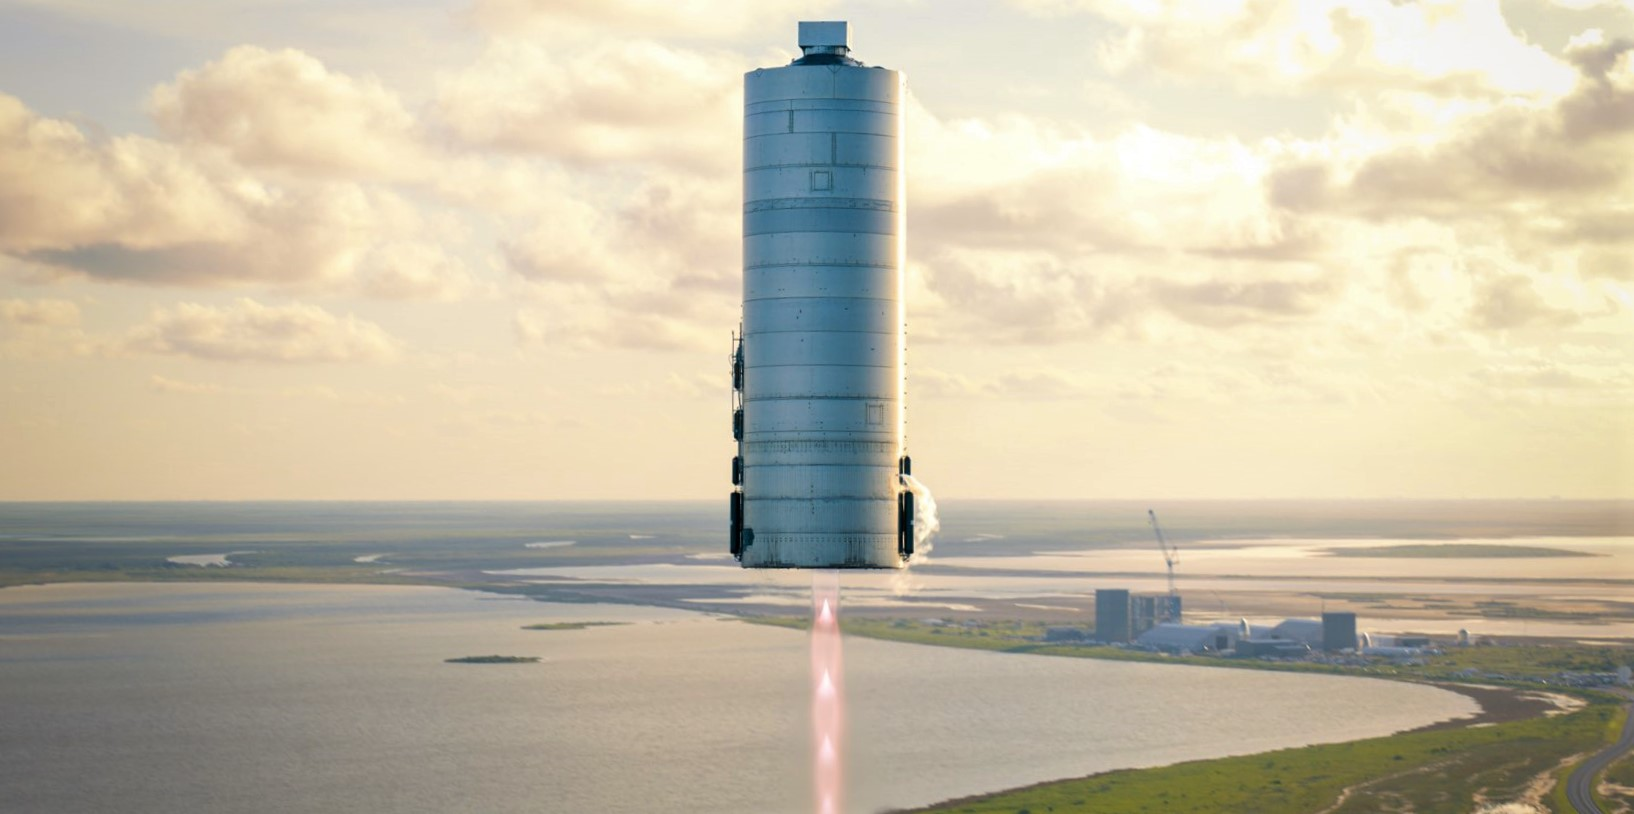 SpaceX's first flight-proven Starship could fly again, says Elon Musk - Teslarati